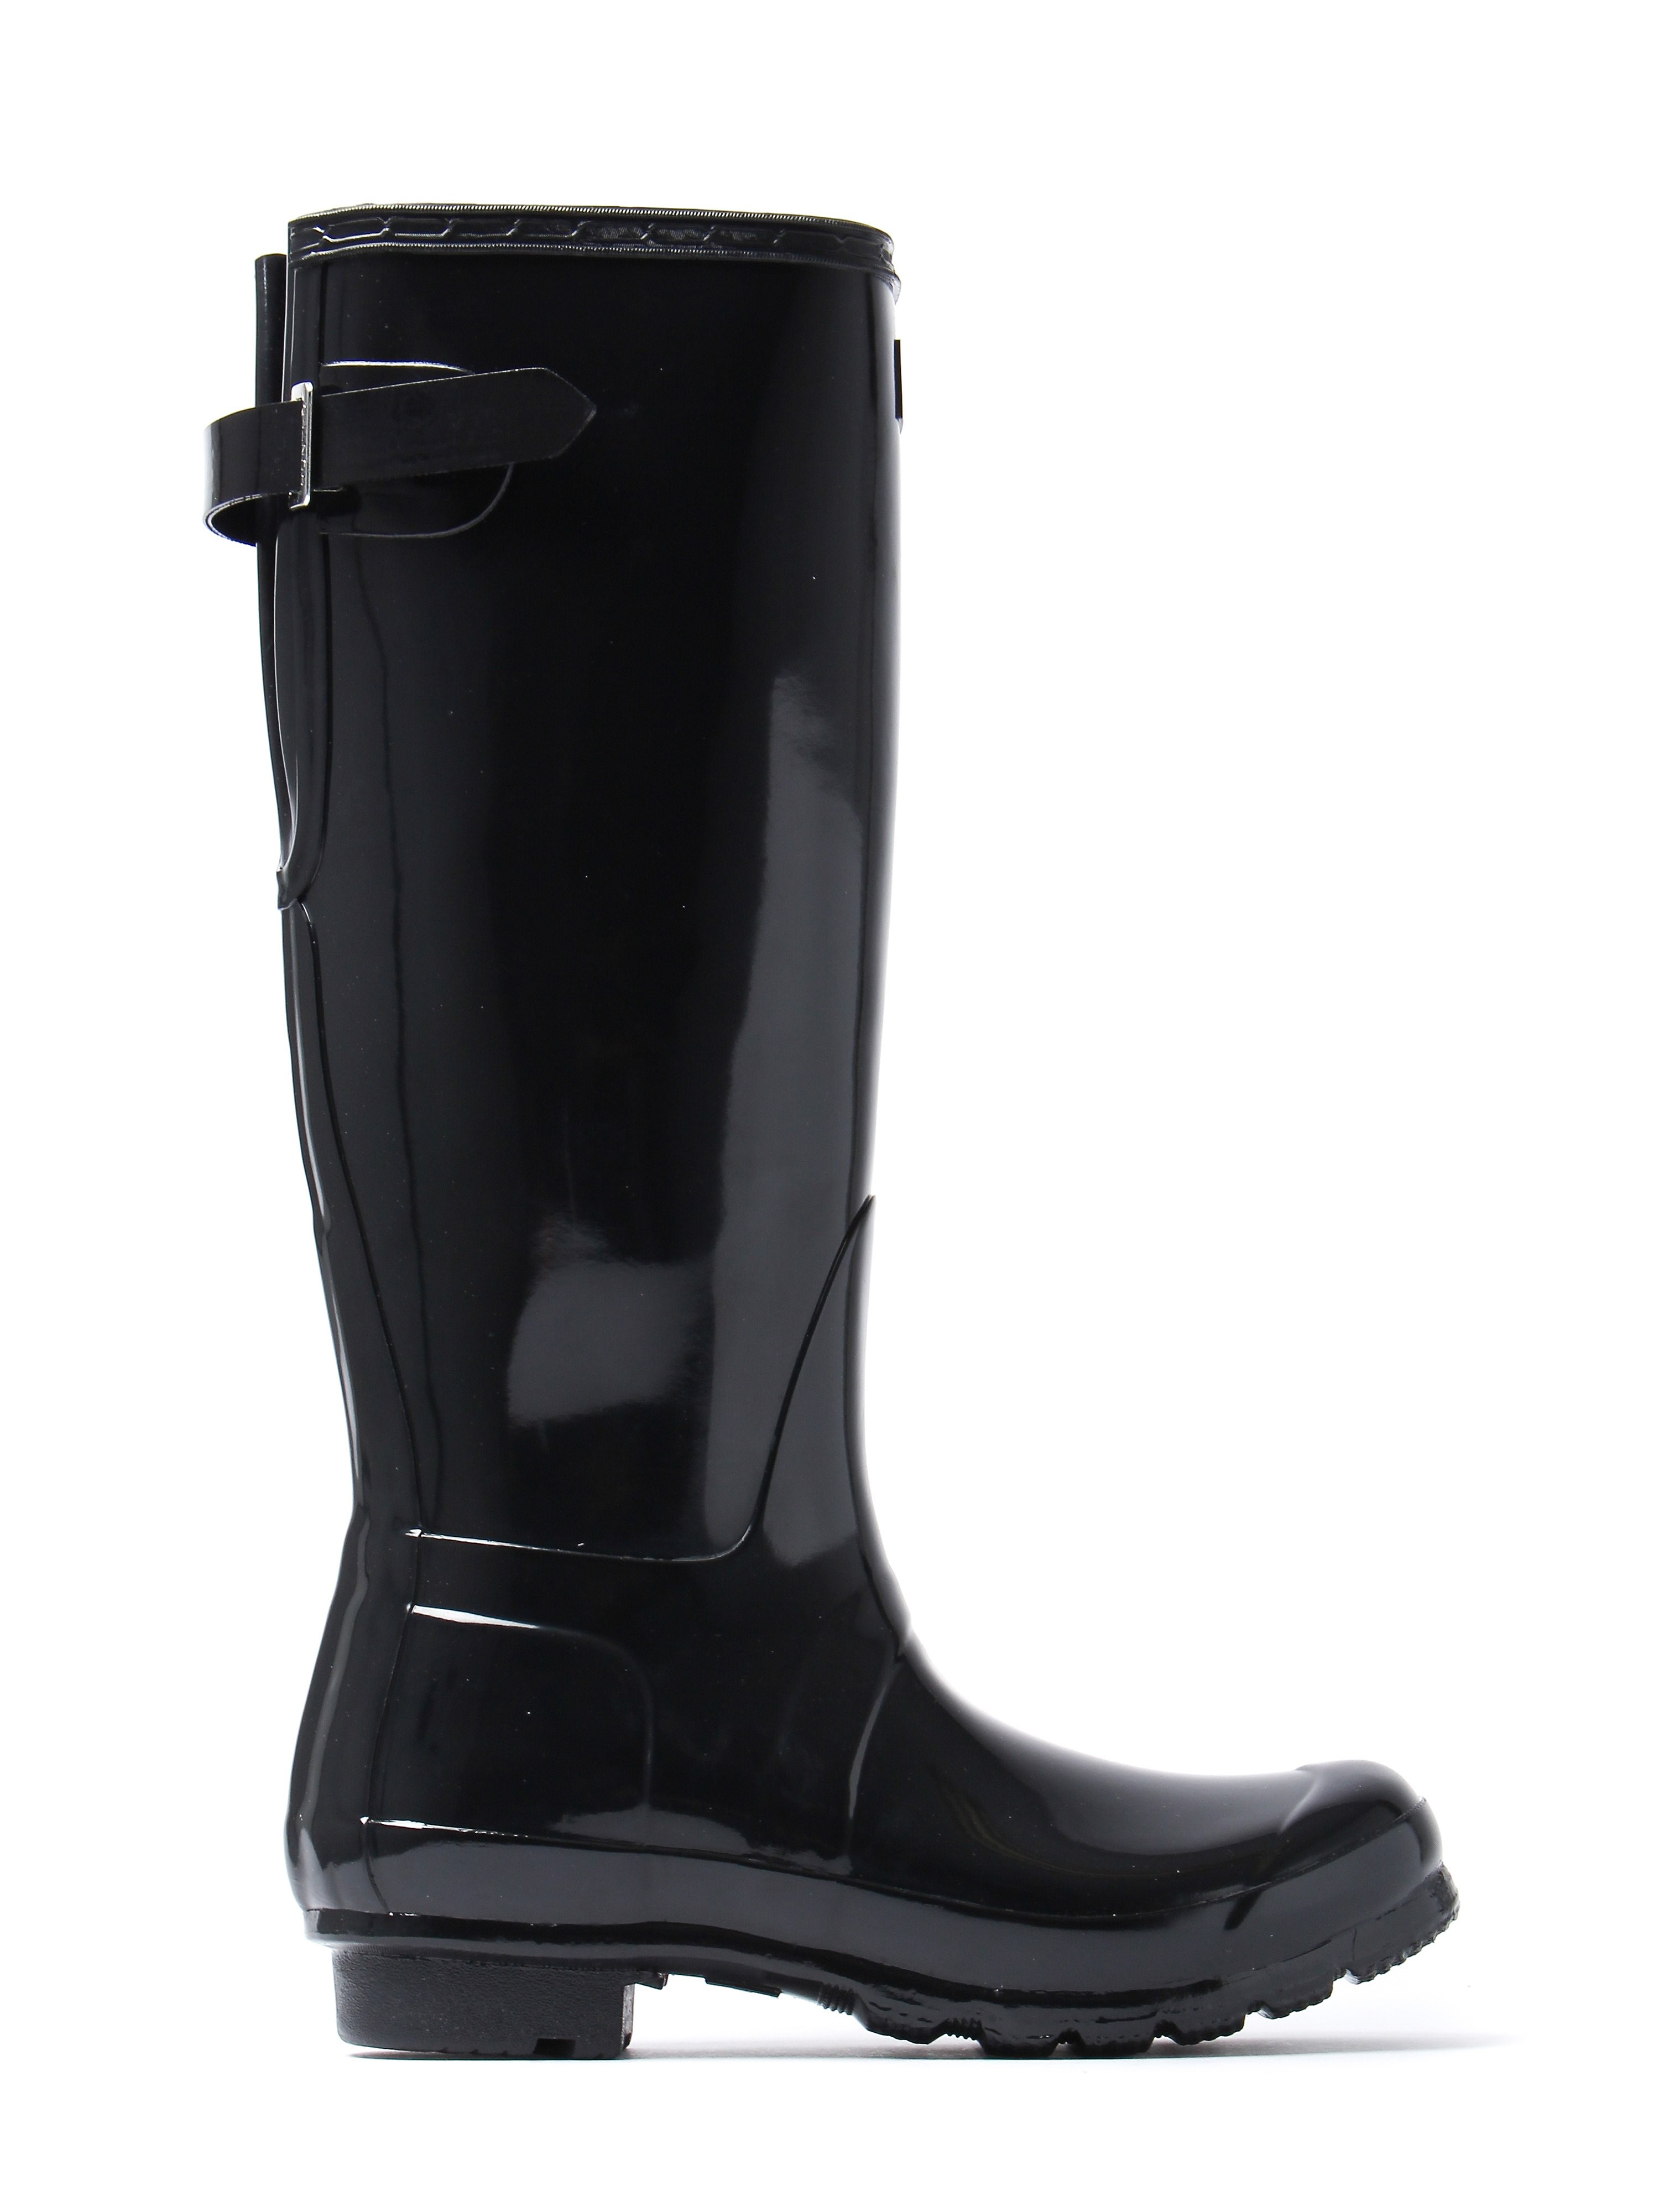 Hunter Wellies Women's Original Back Adjustable Wellington Boots - Black Gloss